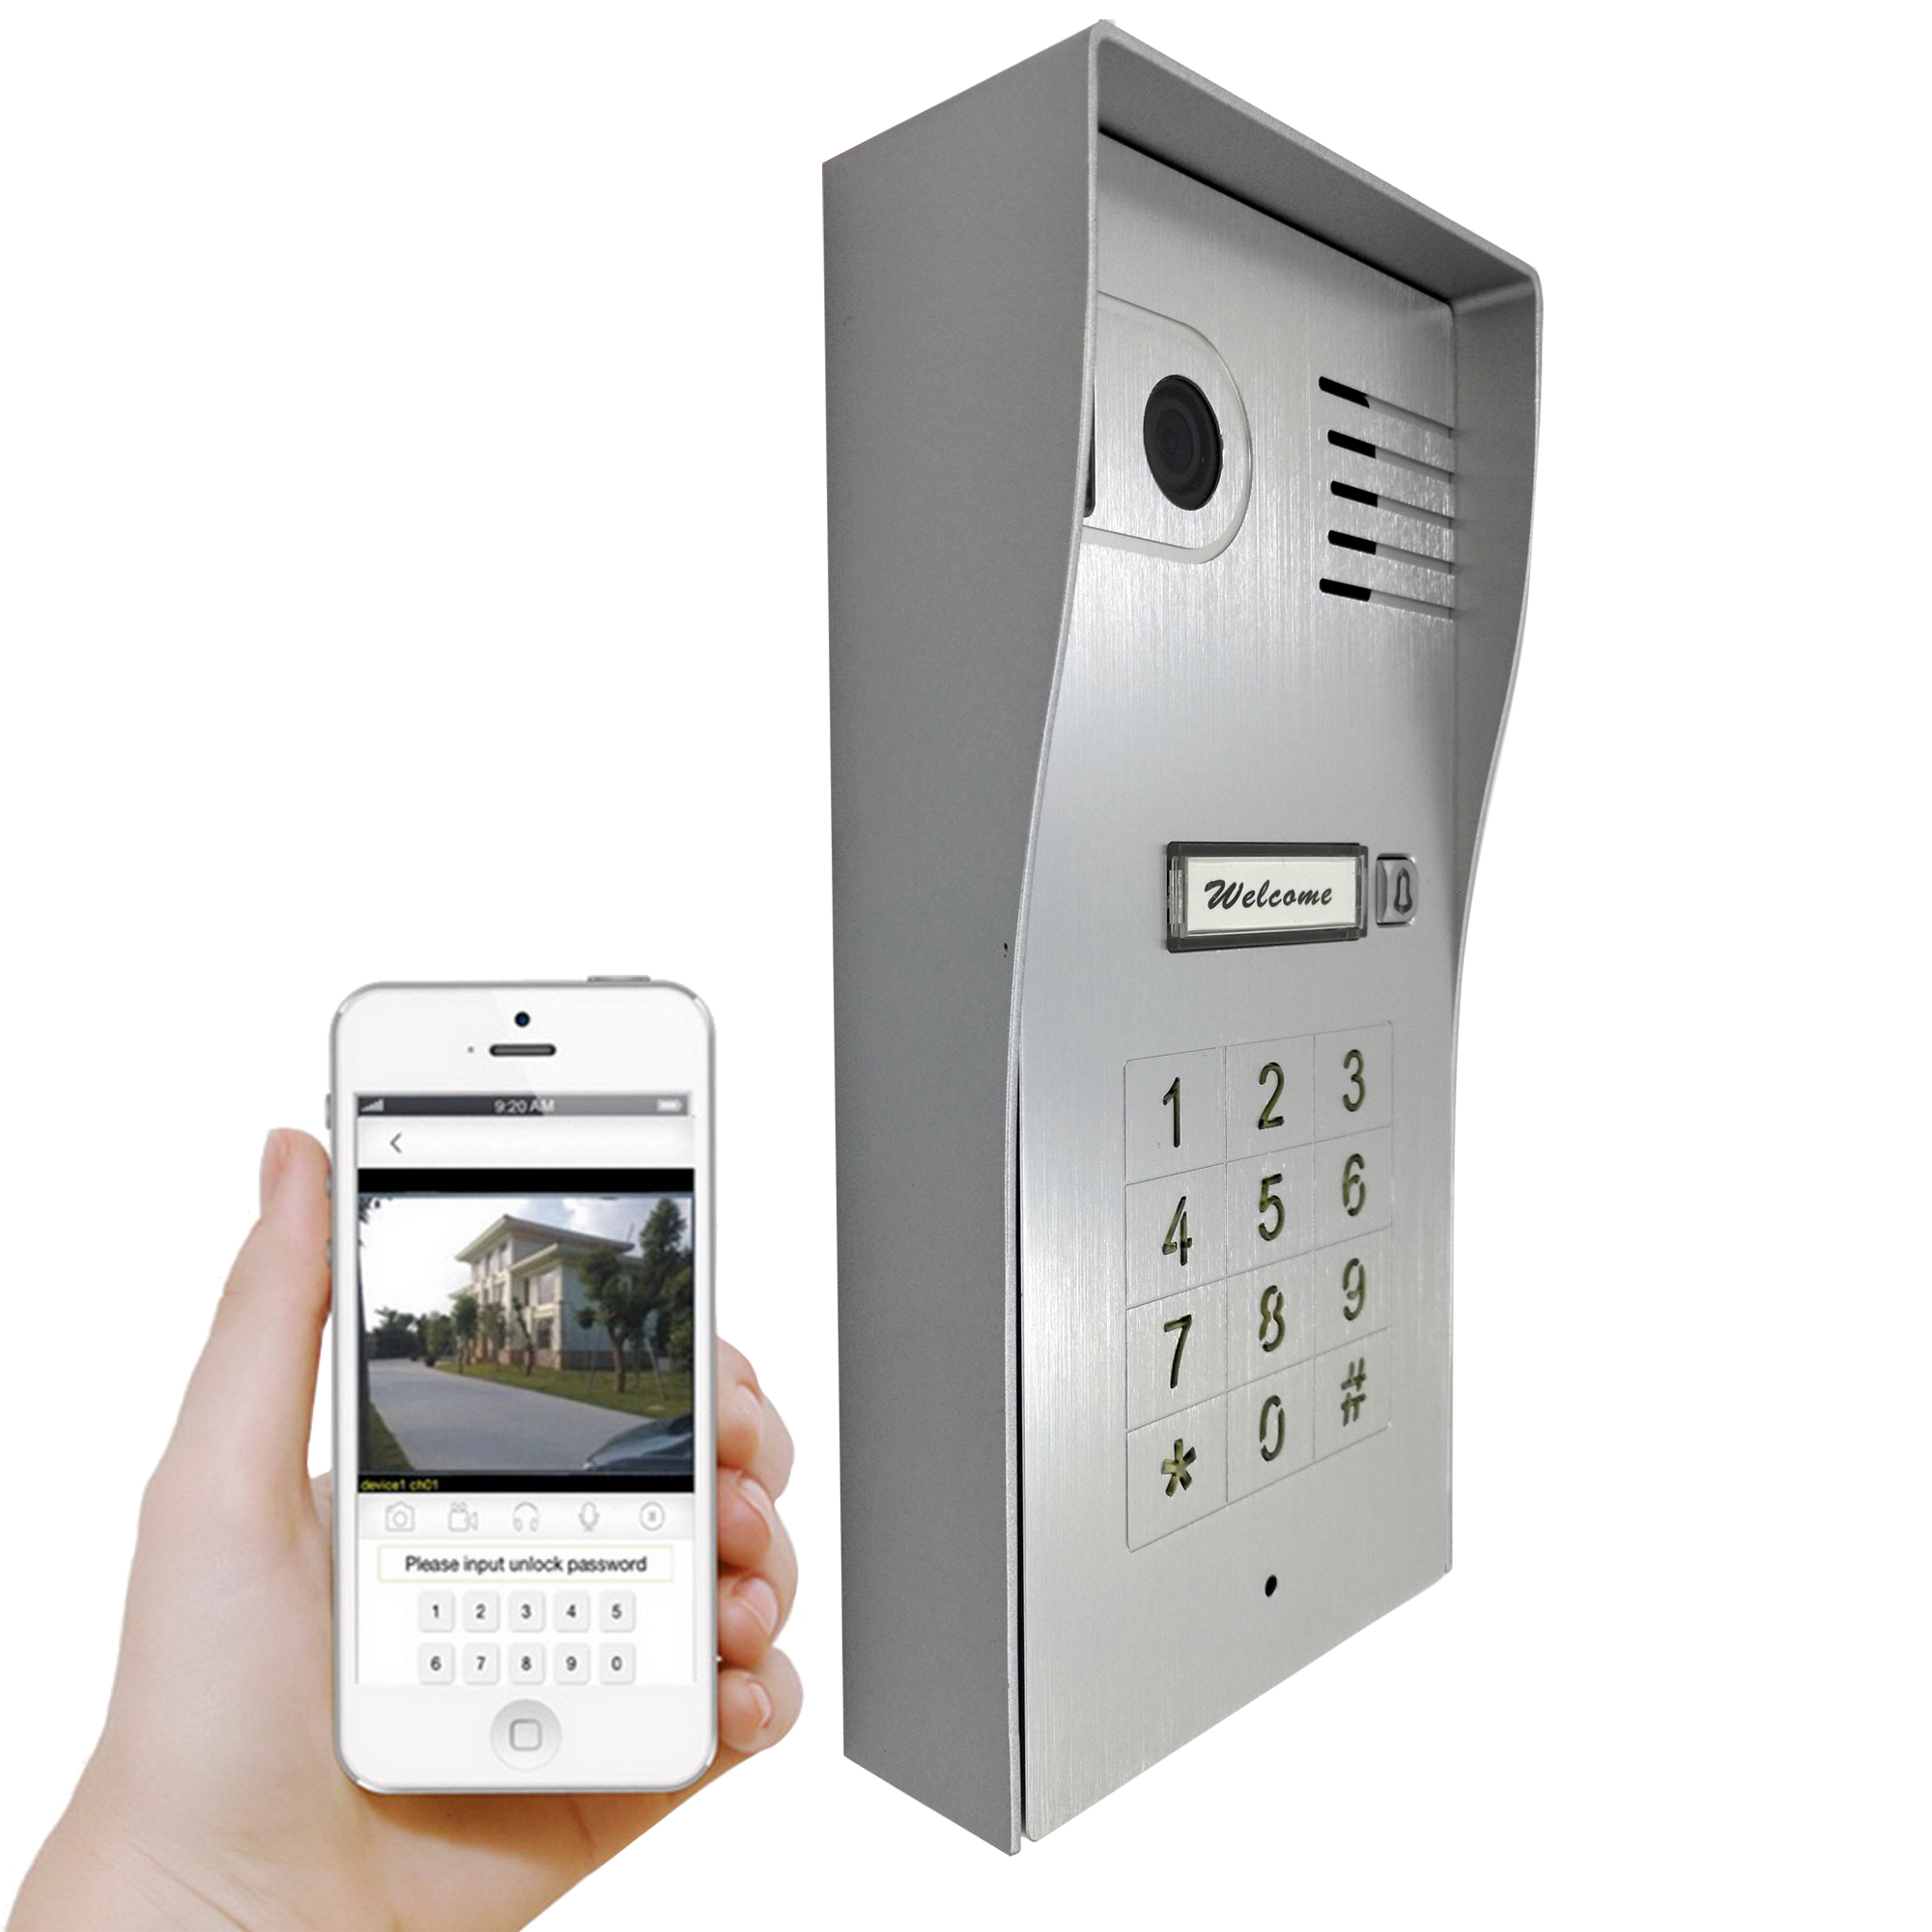 Touch Screen Global Wireless Video Door Phone WIFI Doorbell Intercom Digital Camera Smart Phone Control Night Vision Wifi